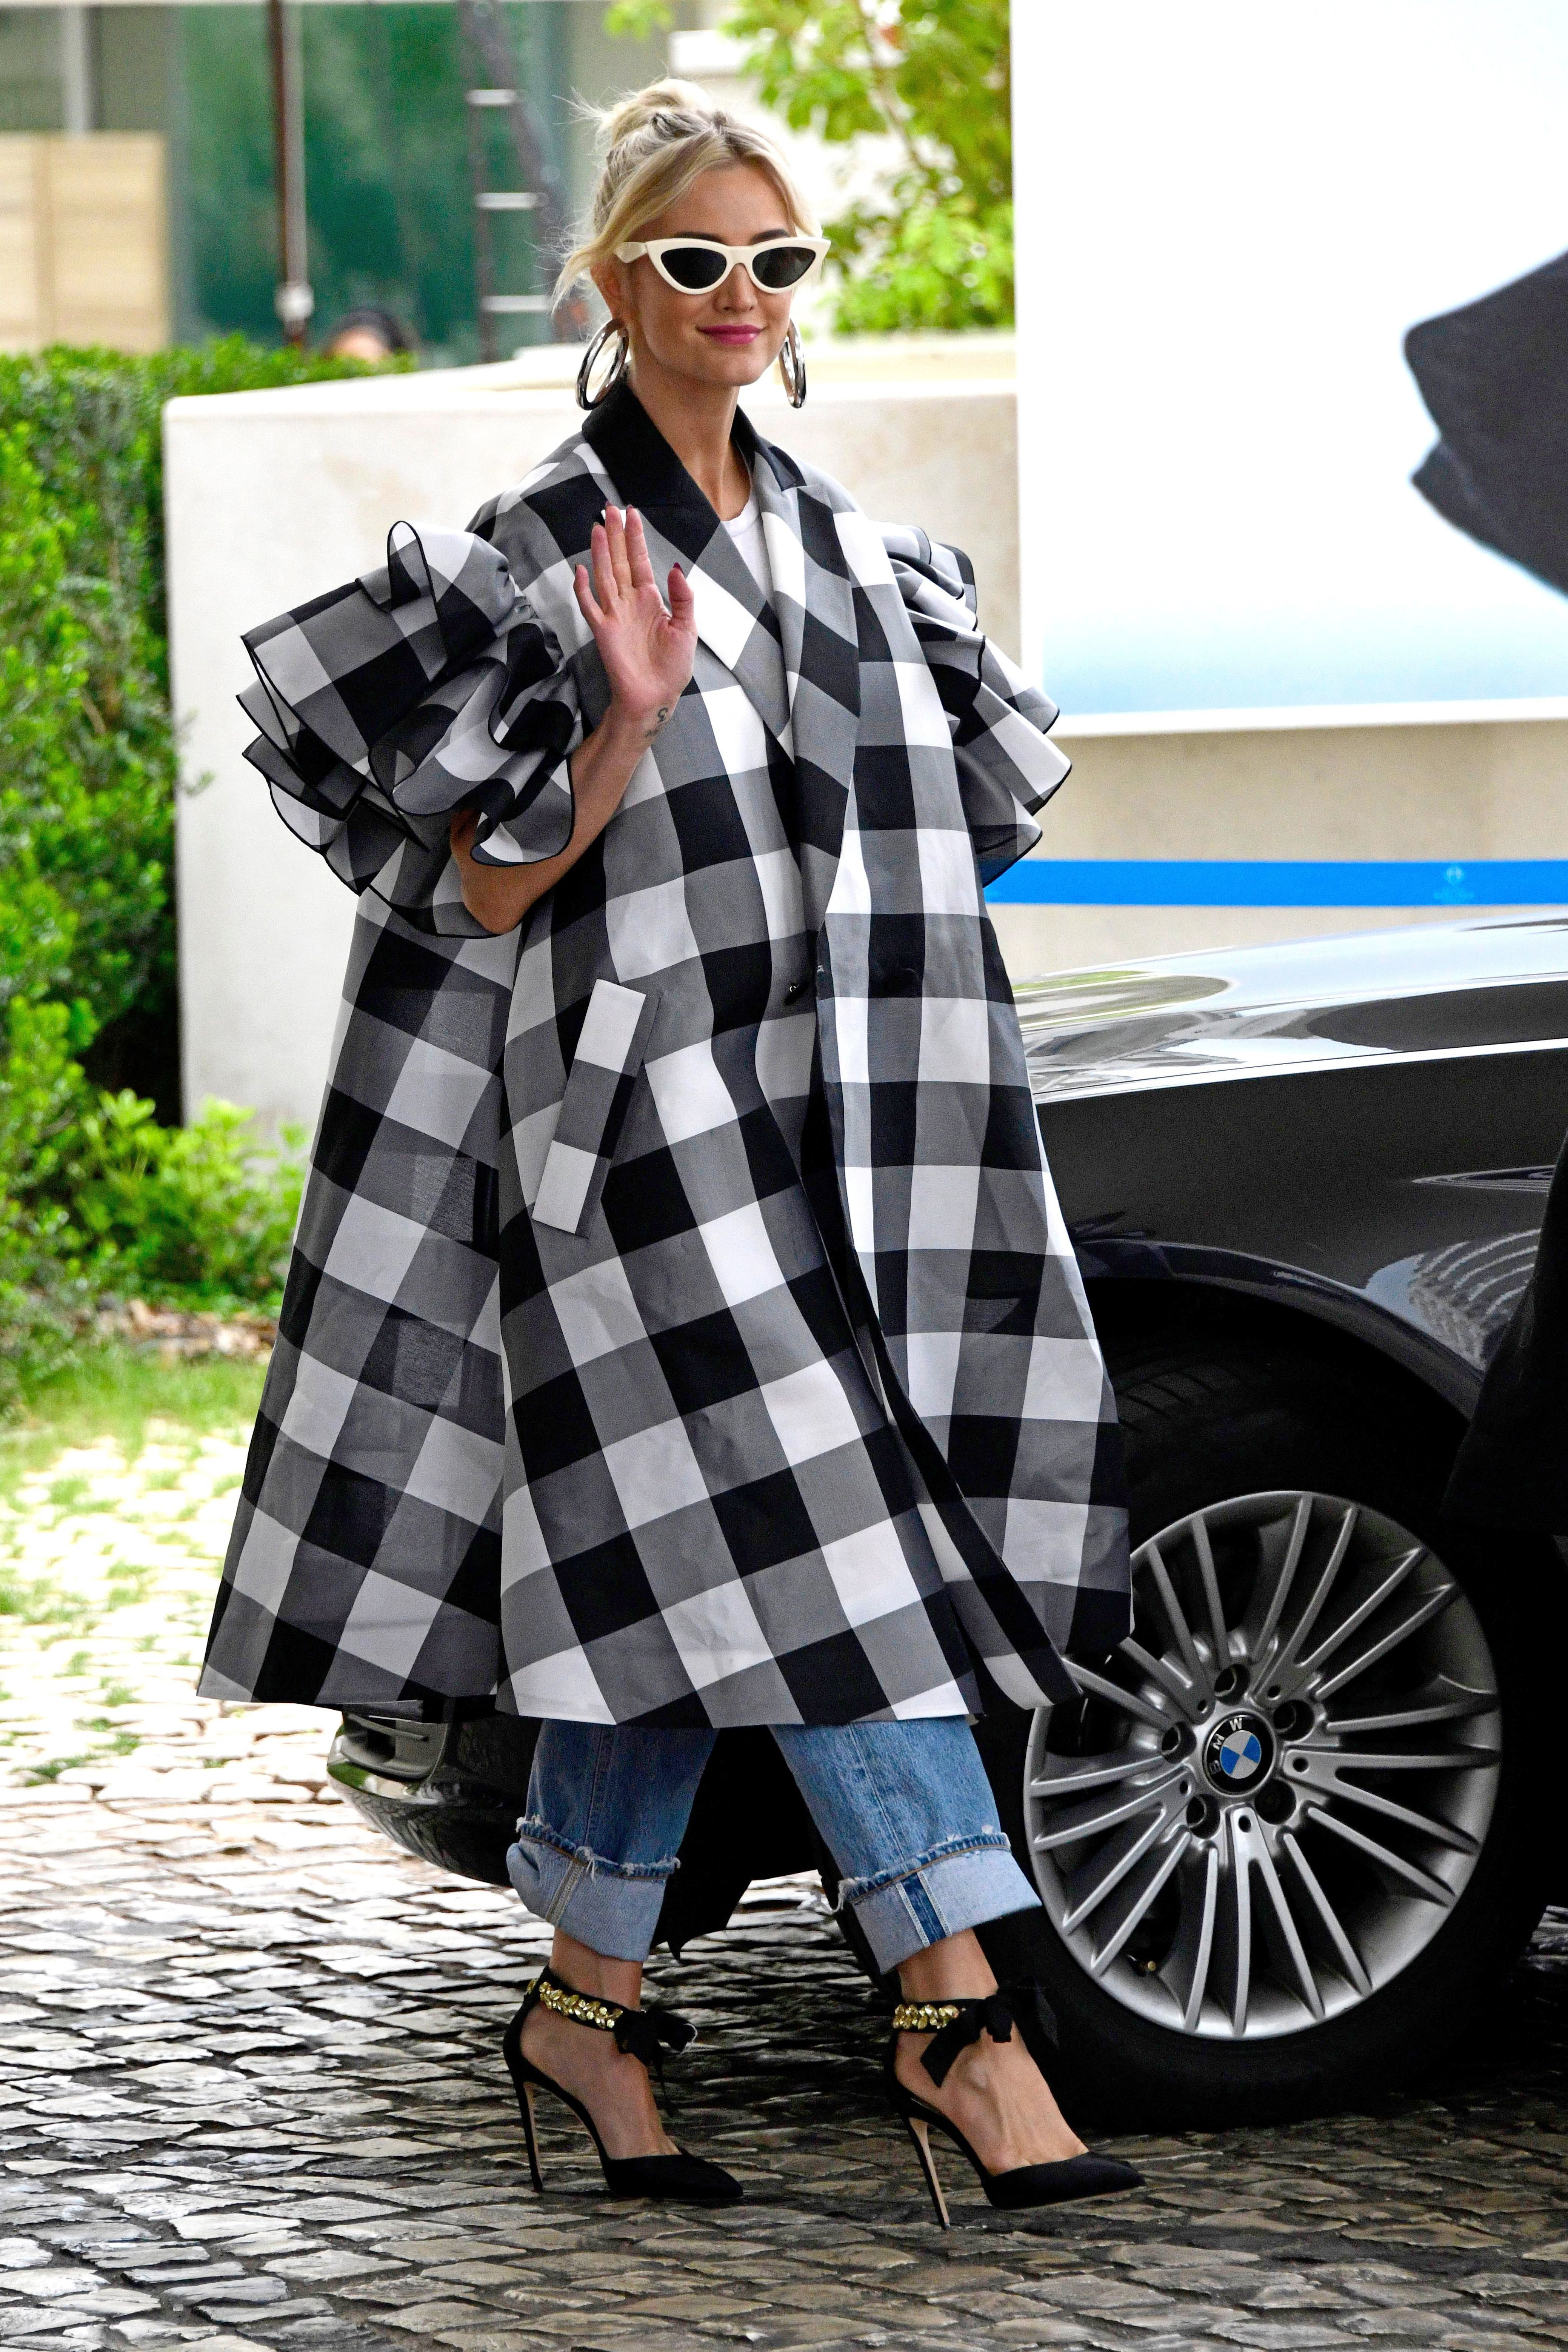 Ashlee Simpson steps out during the 72nd Cannes Film Festival on May 17, 2019.